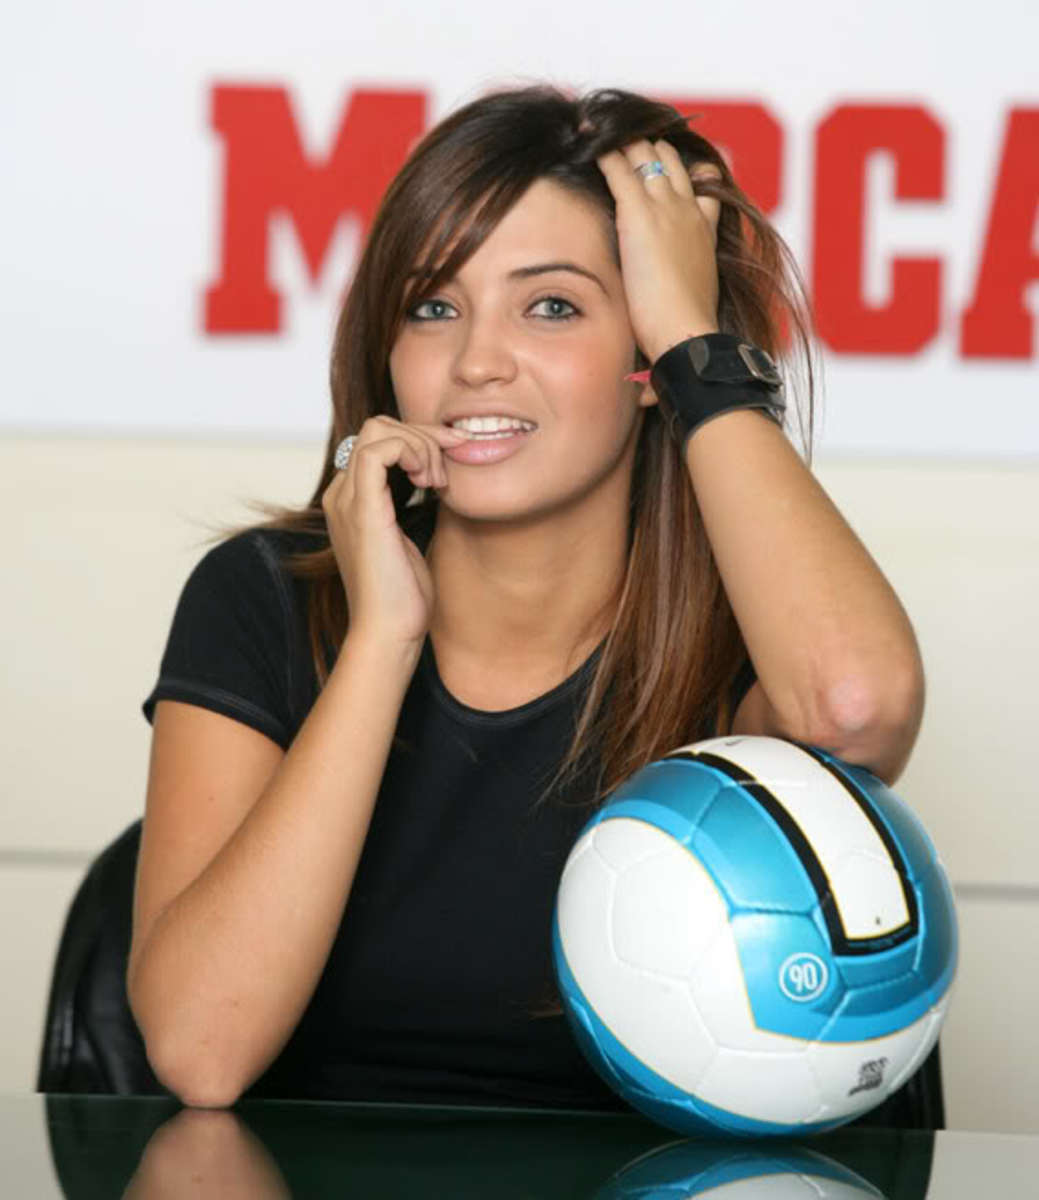 Hot Female Sports Presenters - UK v Rest of The World